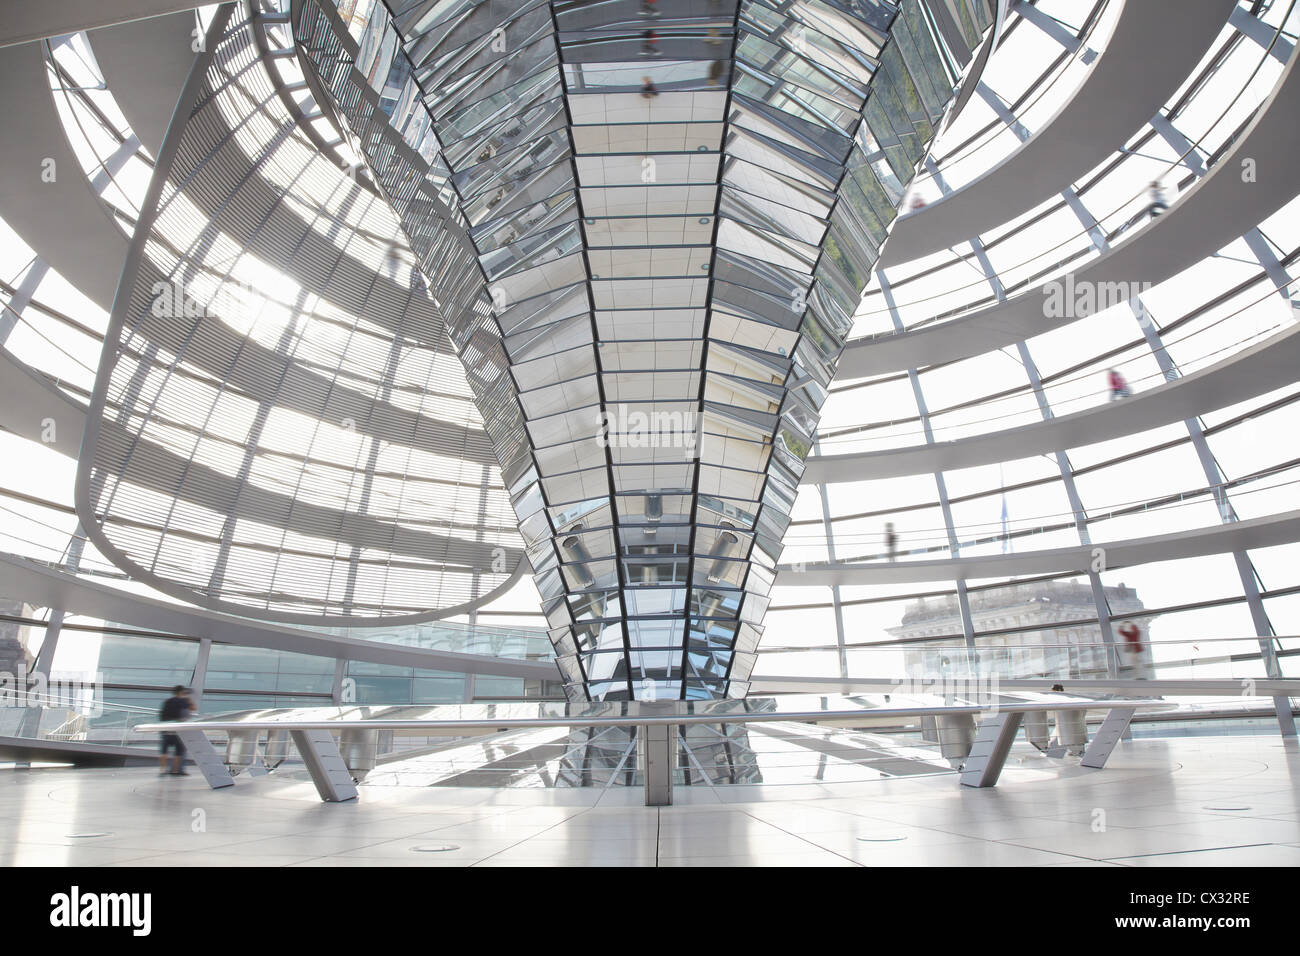 reichstag dome interior berlin stock photo royalty free. Black Bedroom Furniture Sets. Home Design Ideas